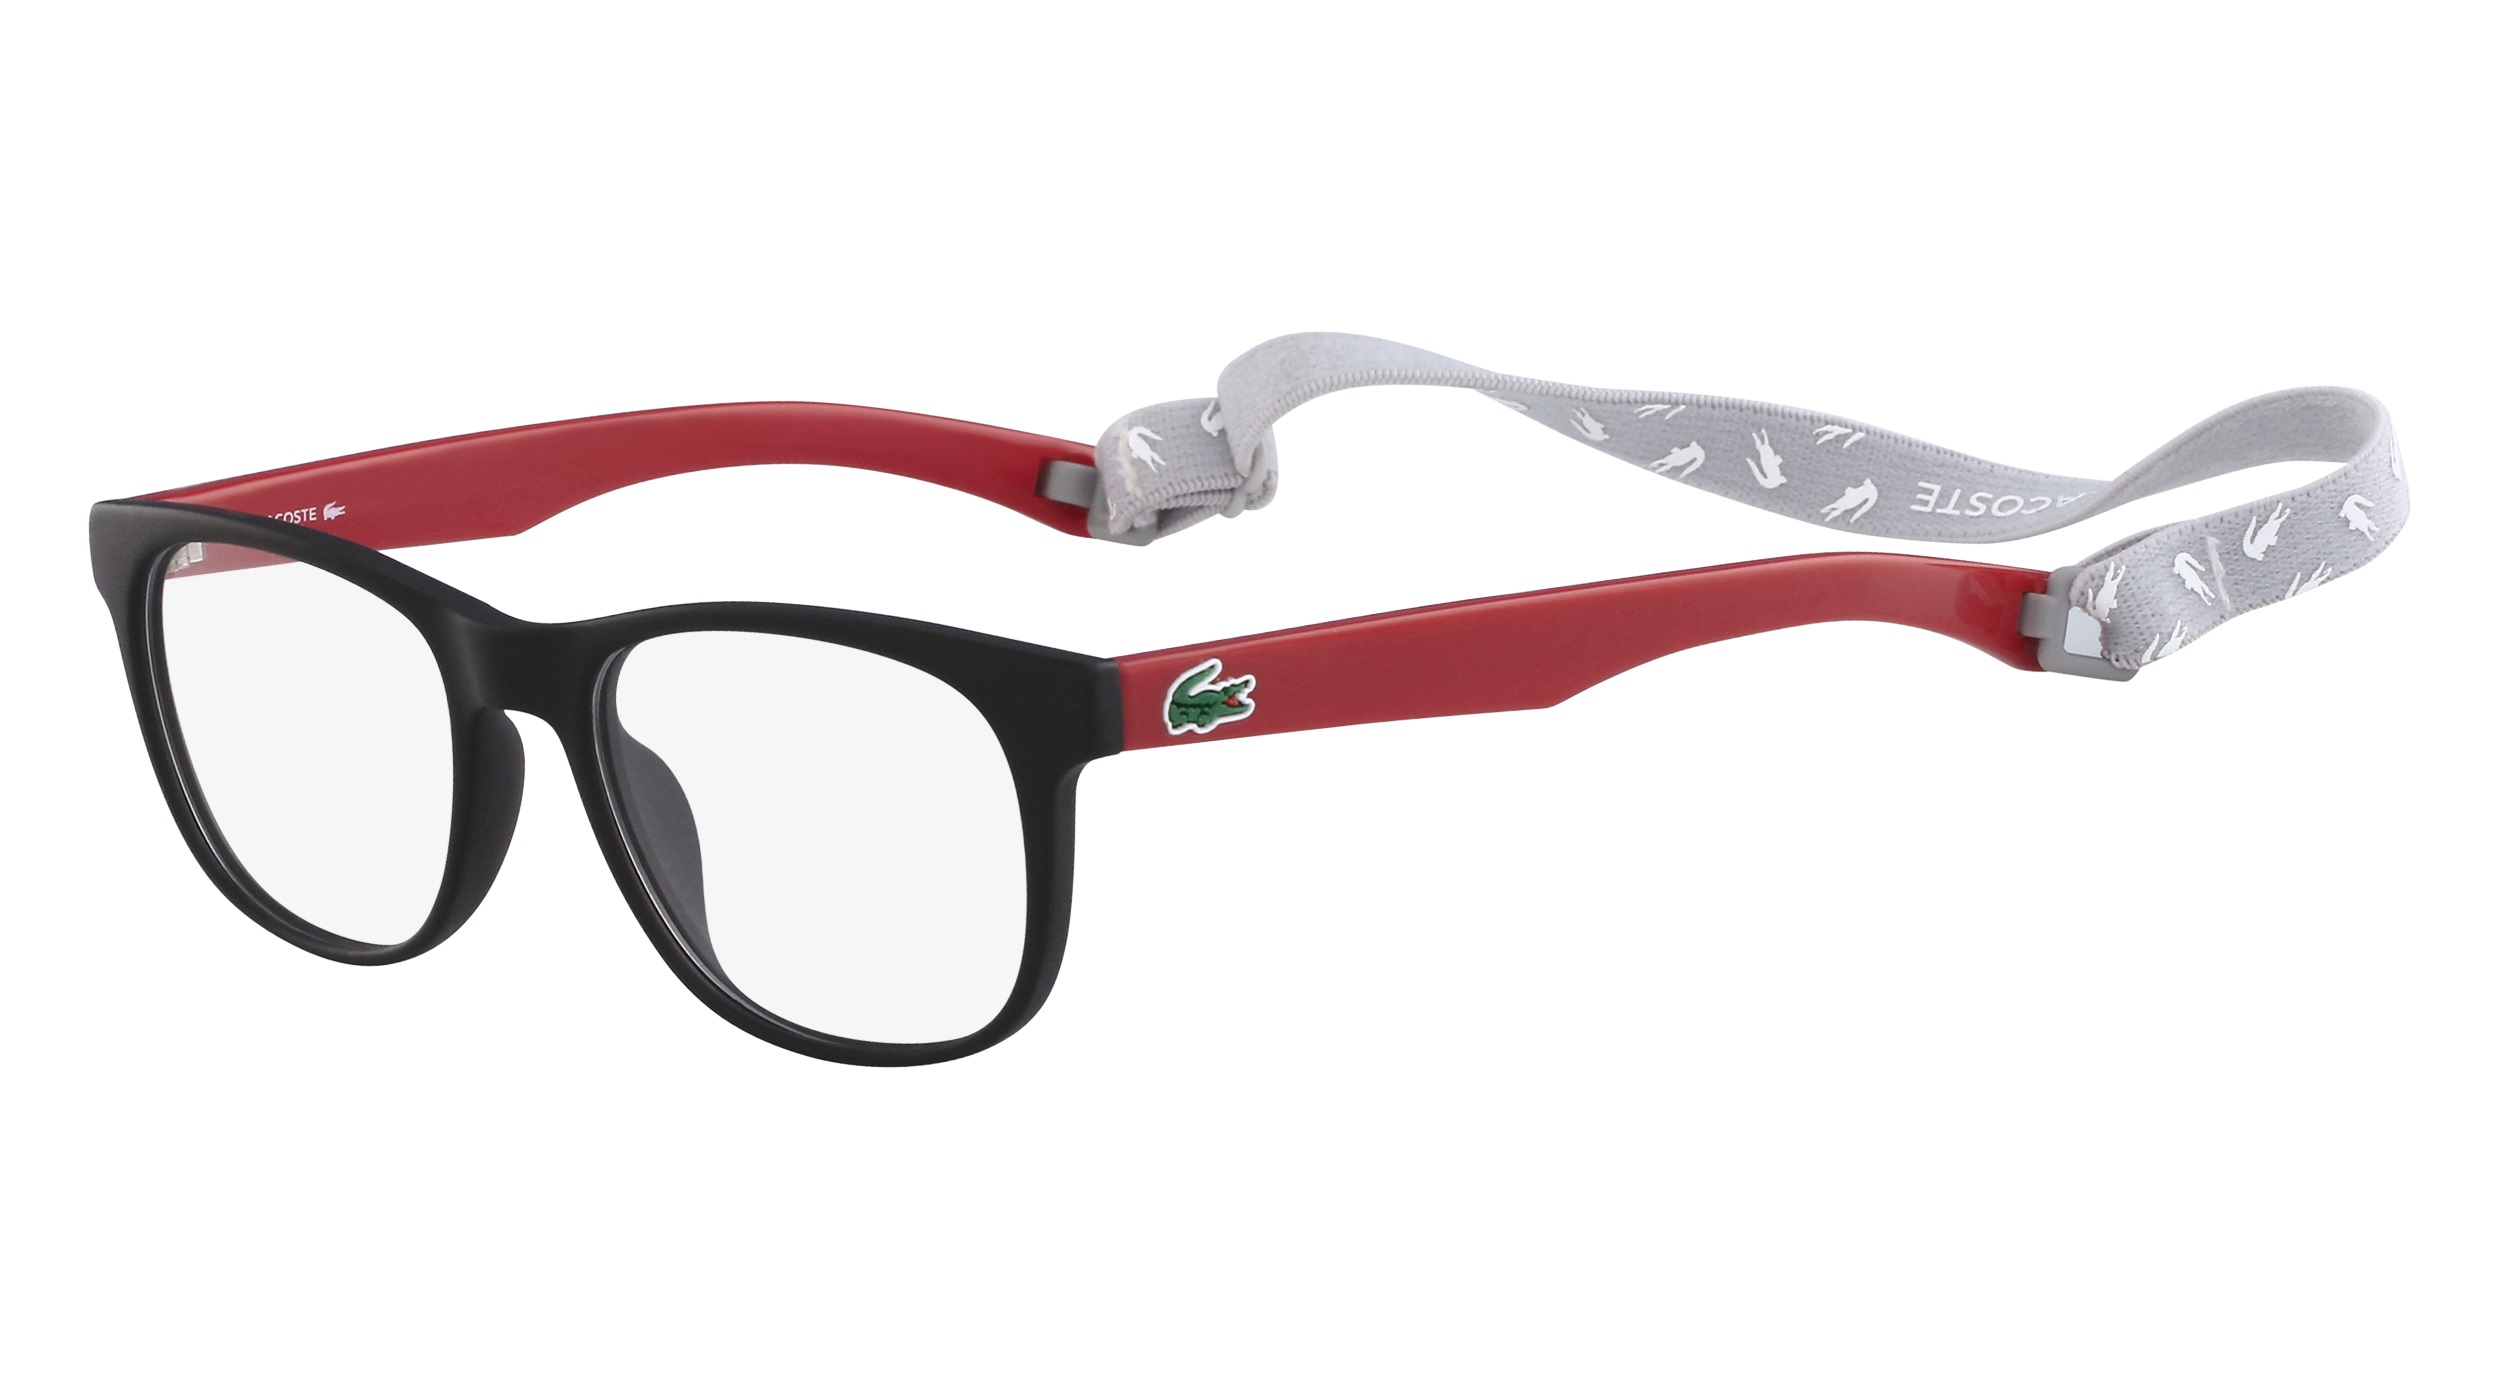 254eb19501e5 Kids Glasses - 8-10 years Lacoste - Optiwow